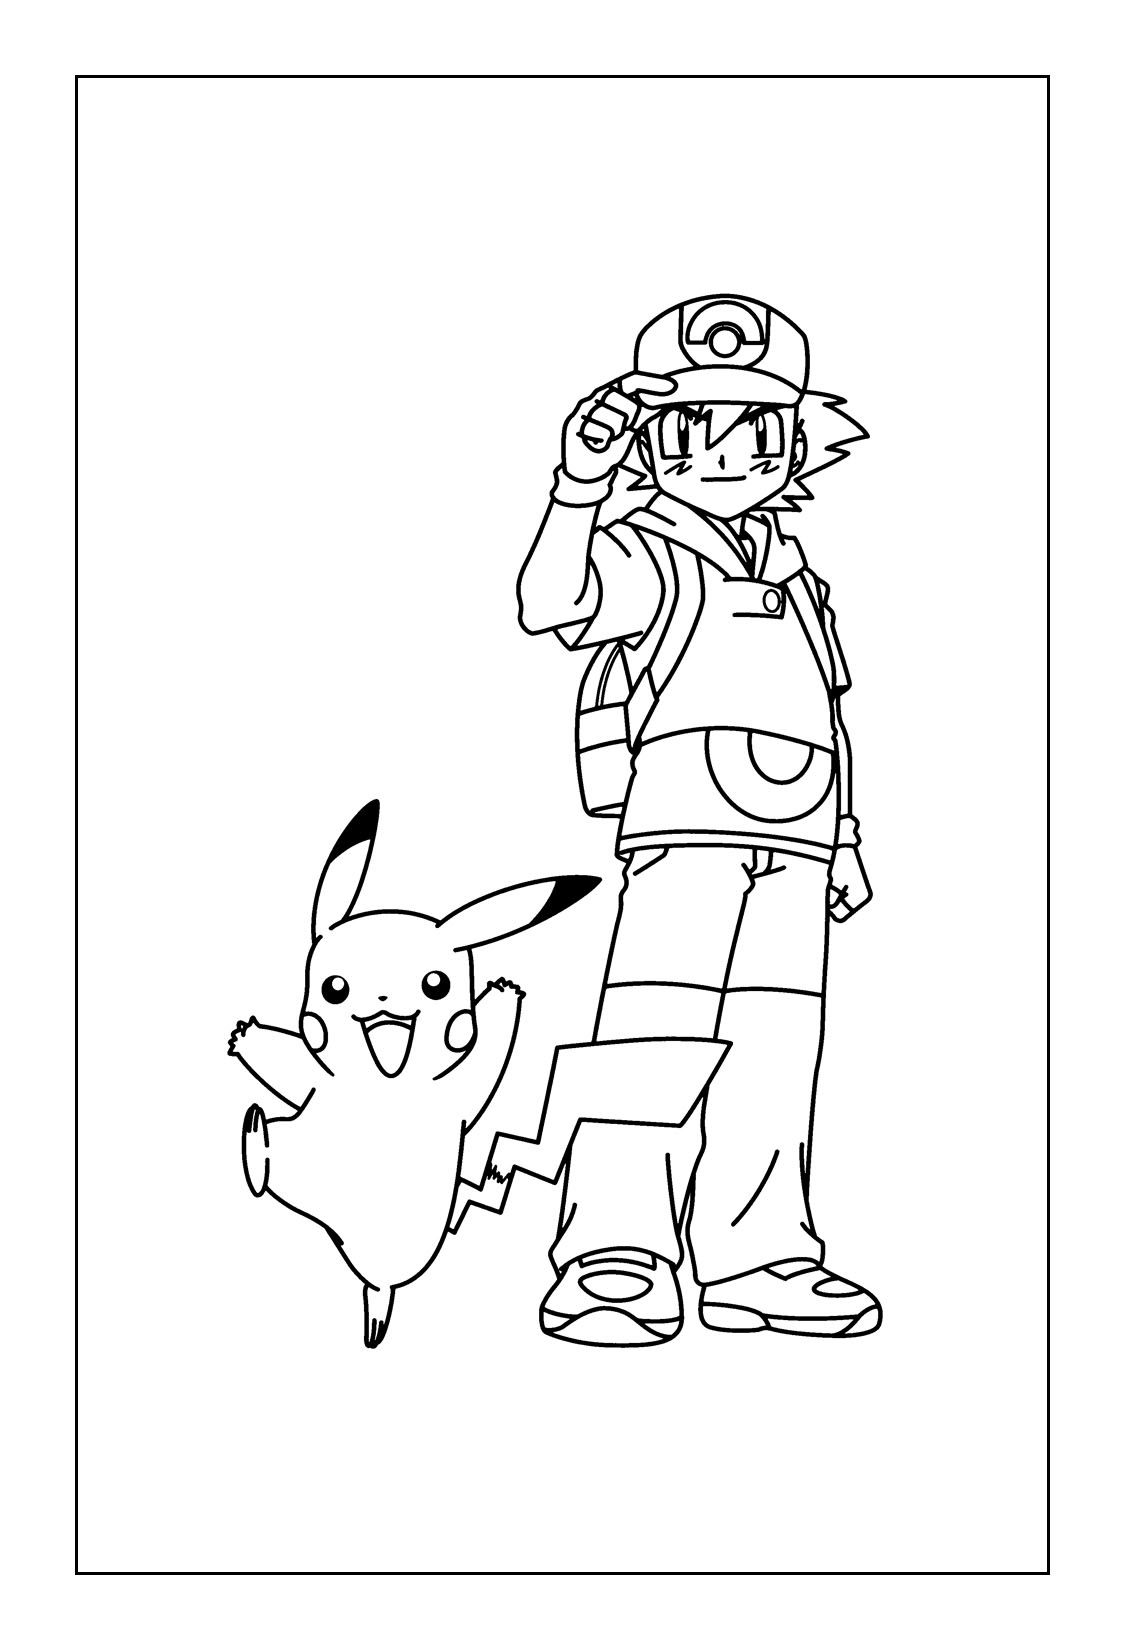 Free Printable Pikachu Coloring Pages Ash And Pikachu Pikachu Coloring Page Pokemon Coloring Pages Pokemon Coloring